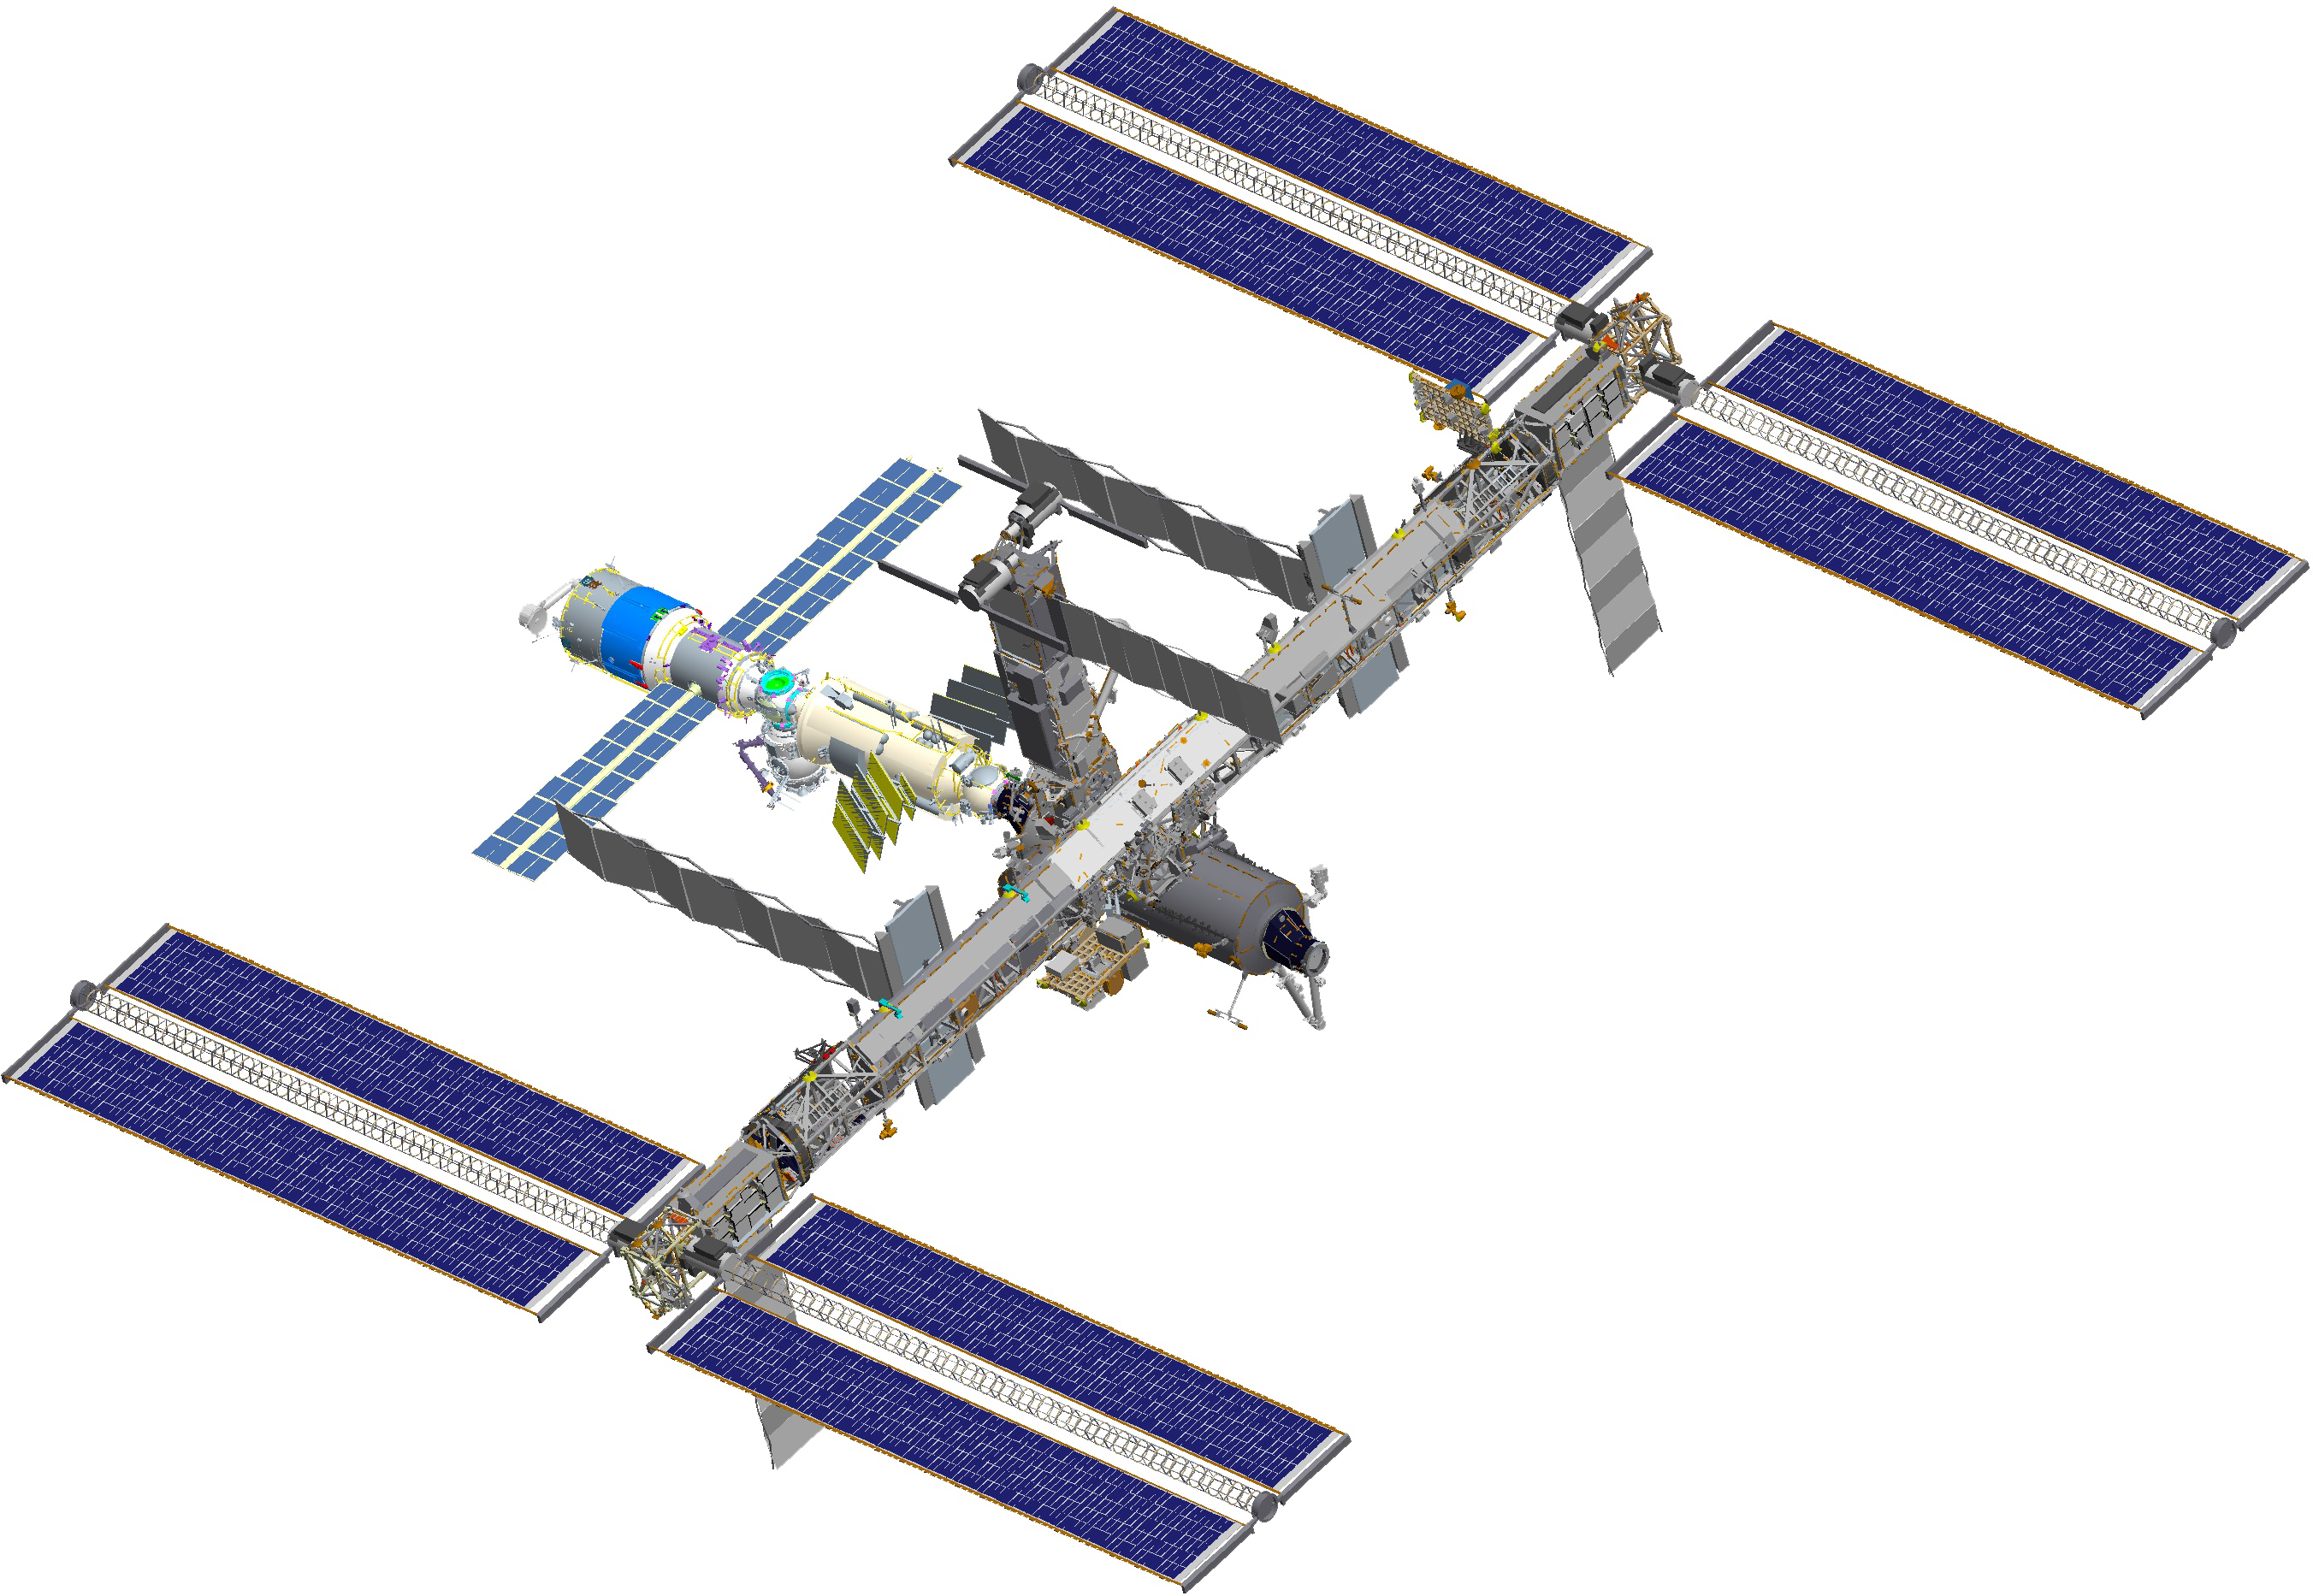 File:ISS after STS-118 (computer rendering of August 2006